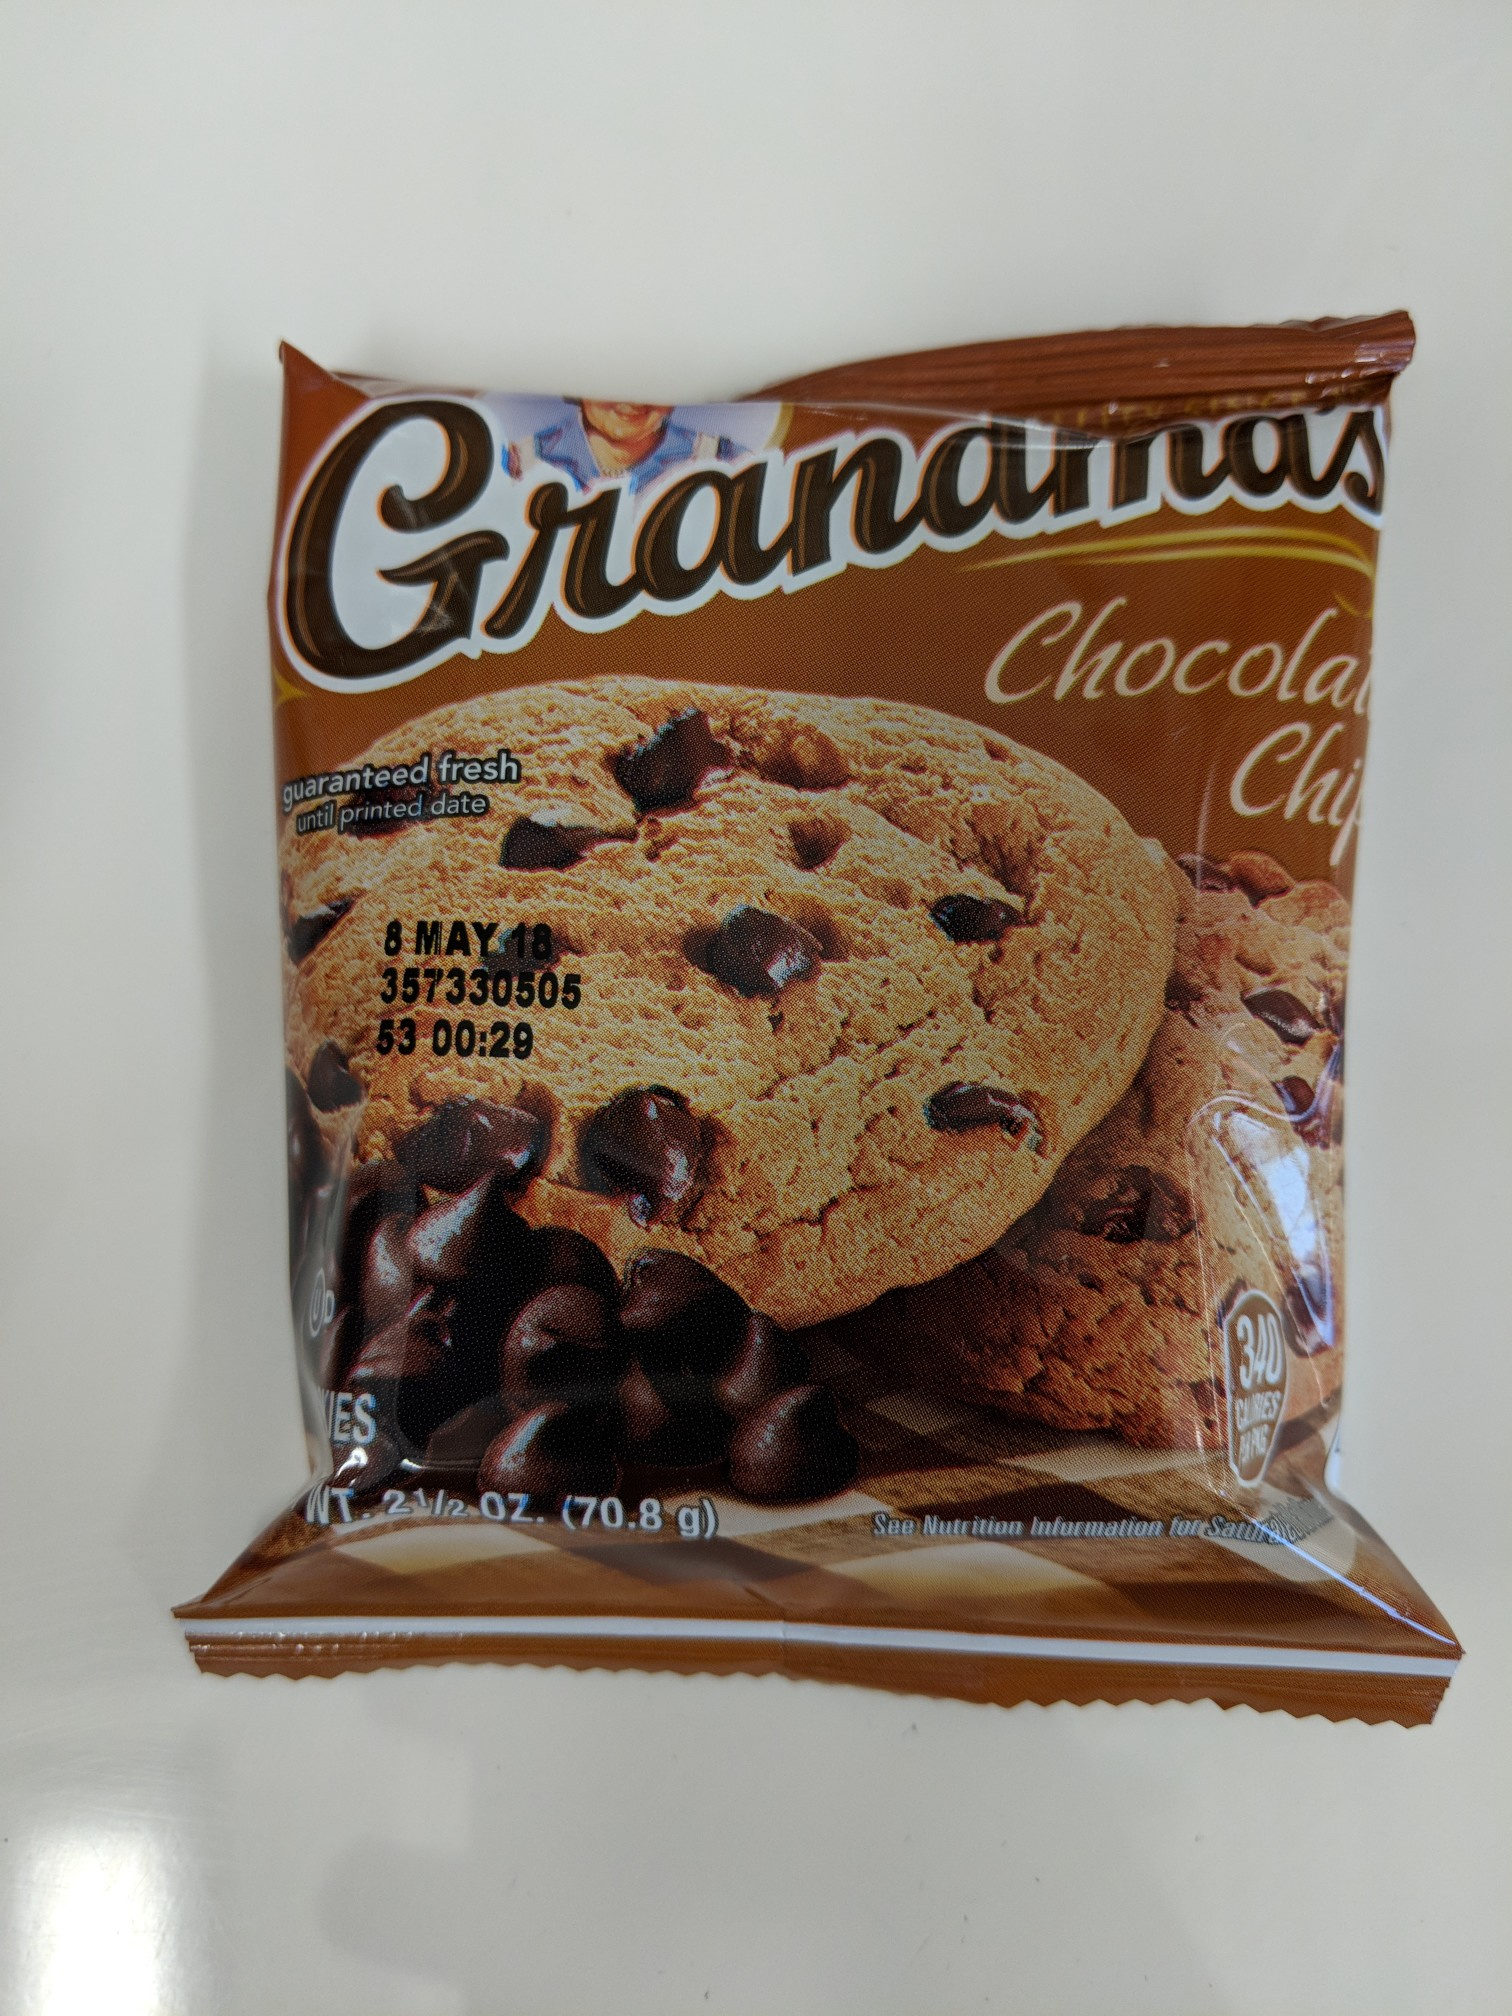 Chocolate Chip - Product - en